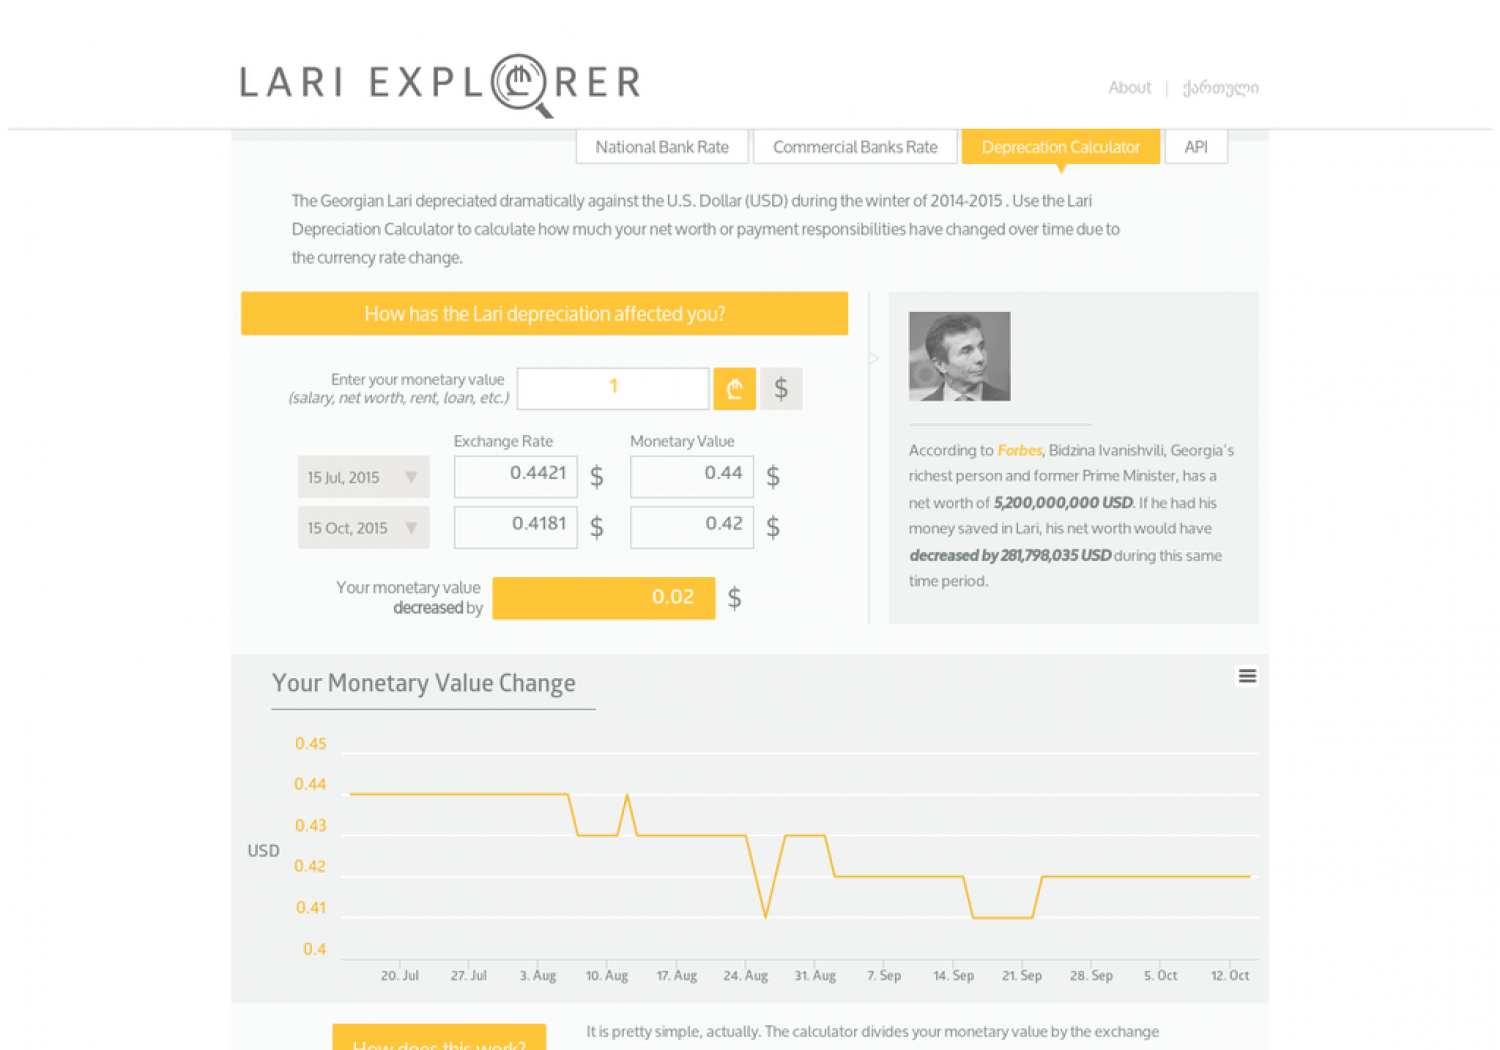 How has the Lari depreciation affected you? Infographic